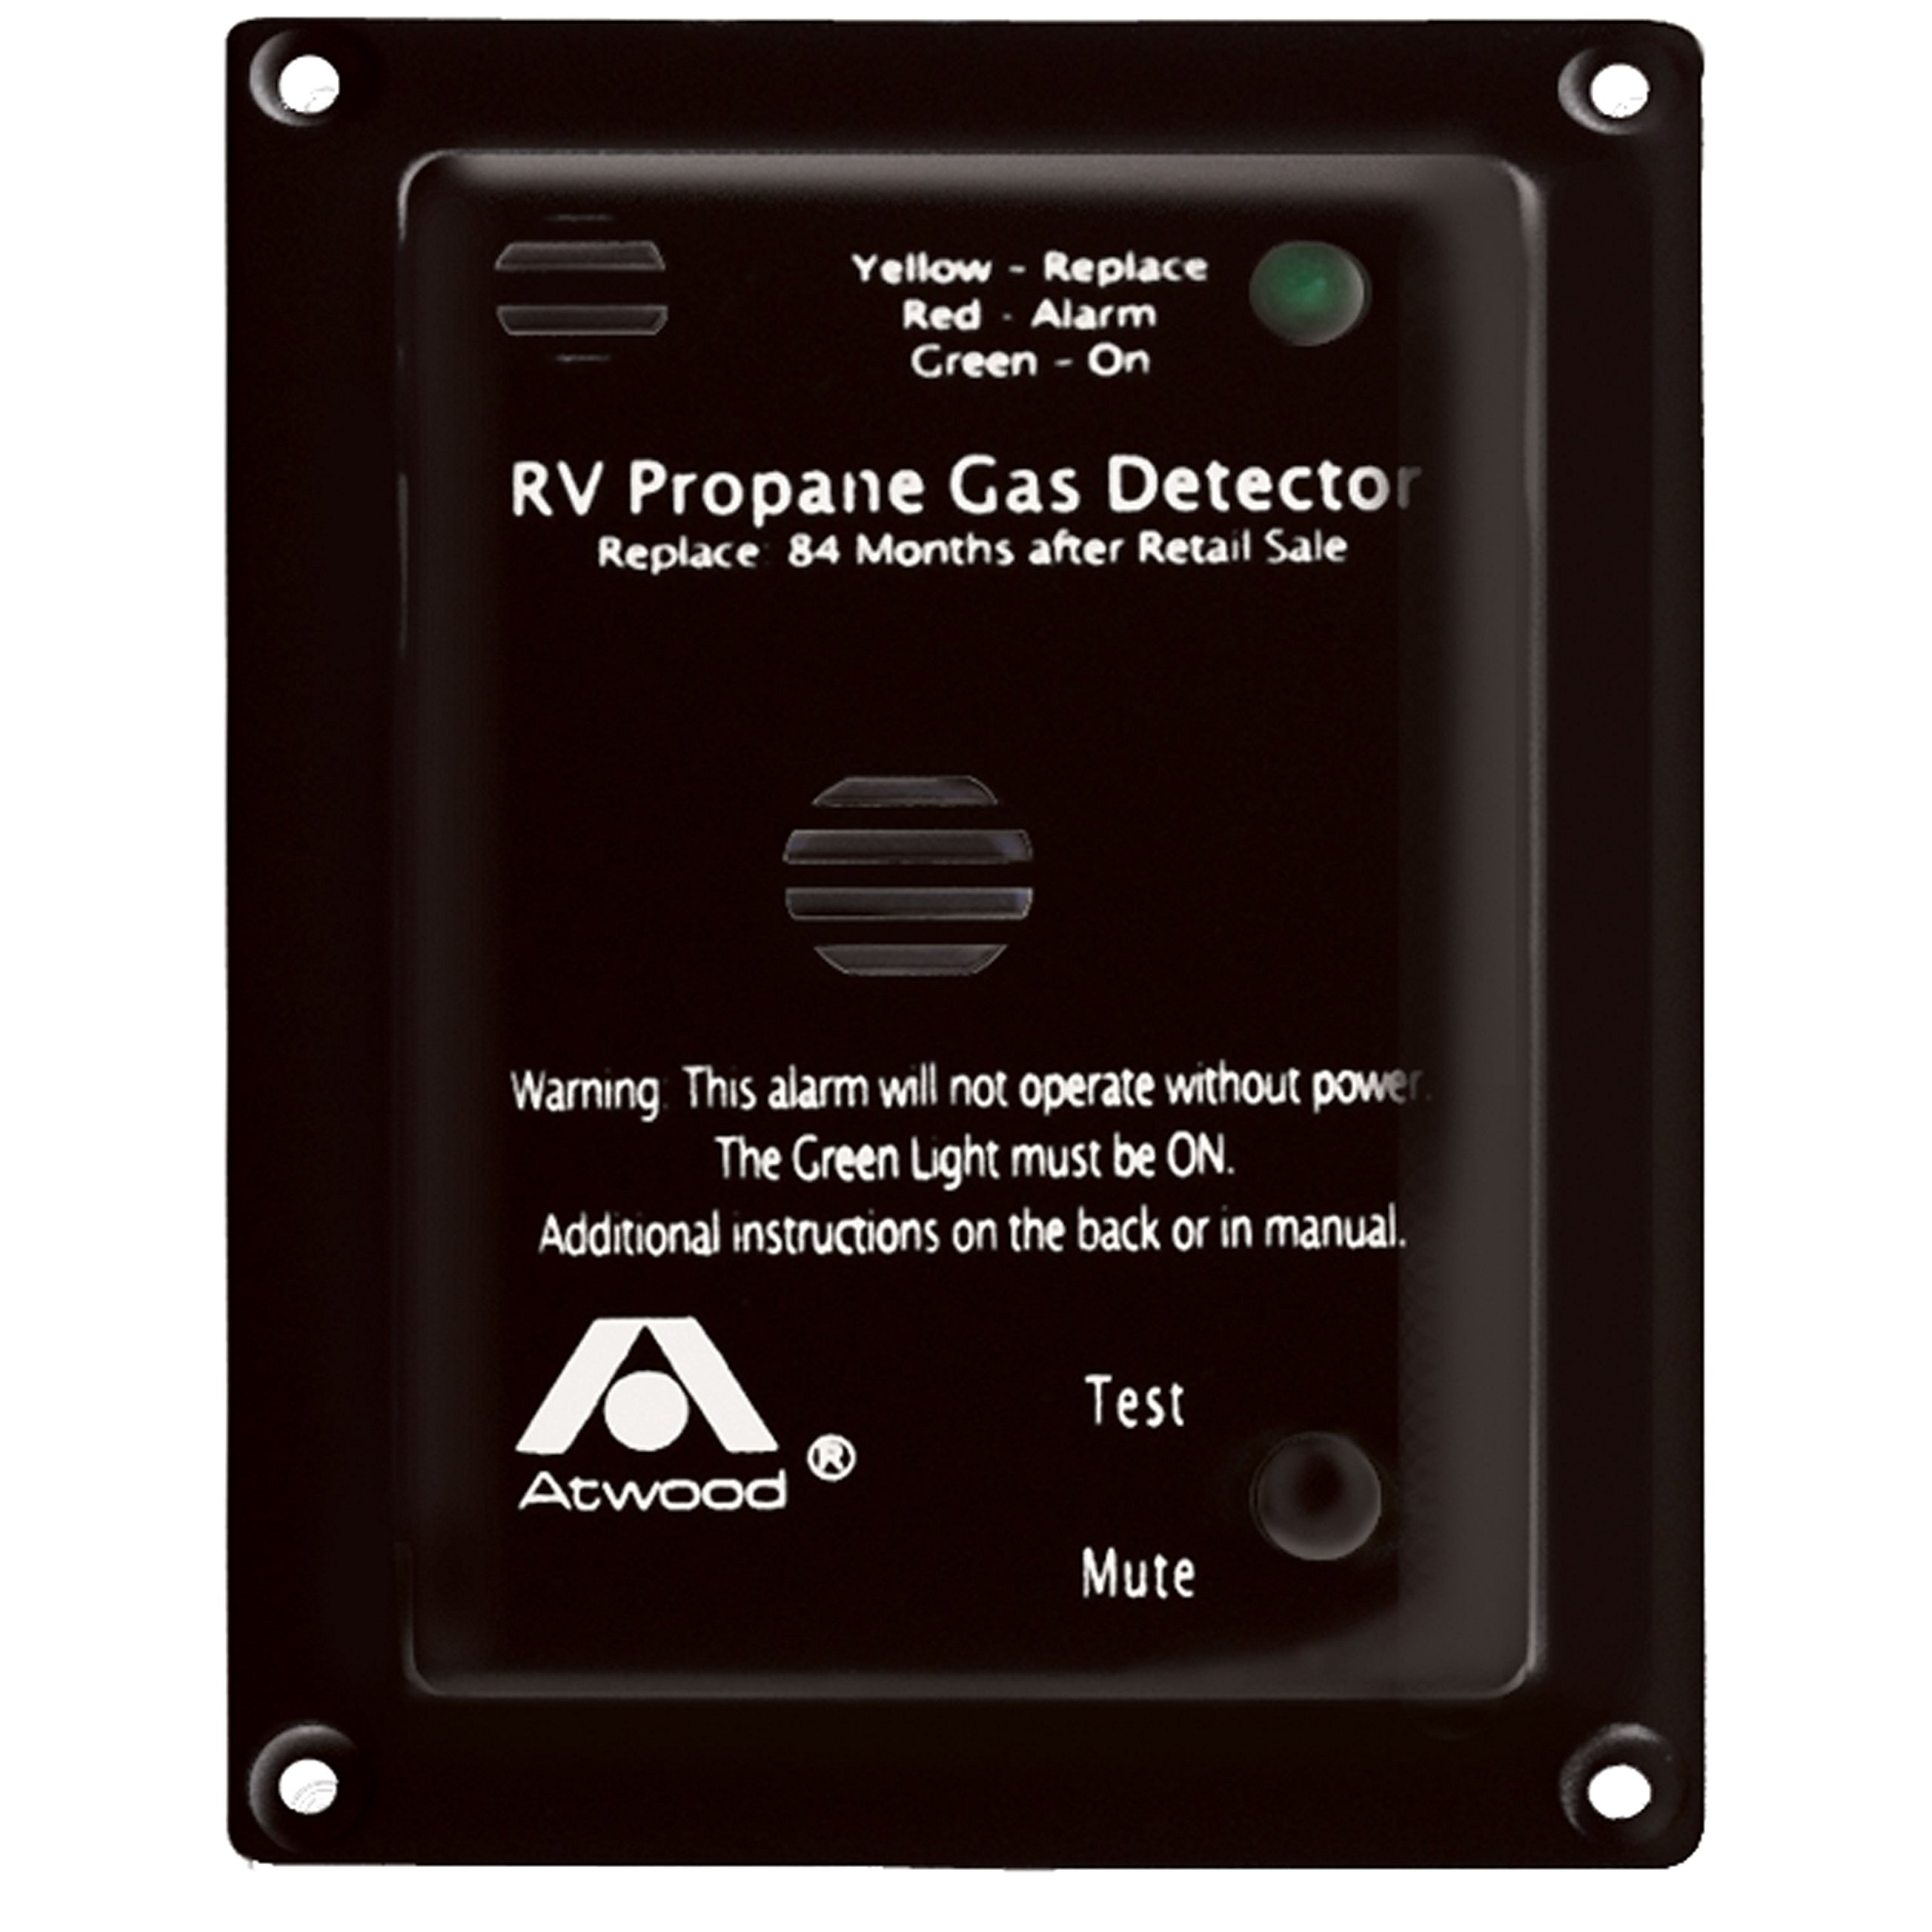 Atwood 31014 RV Propane Gas Detector-12V DC, Black by Atwood